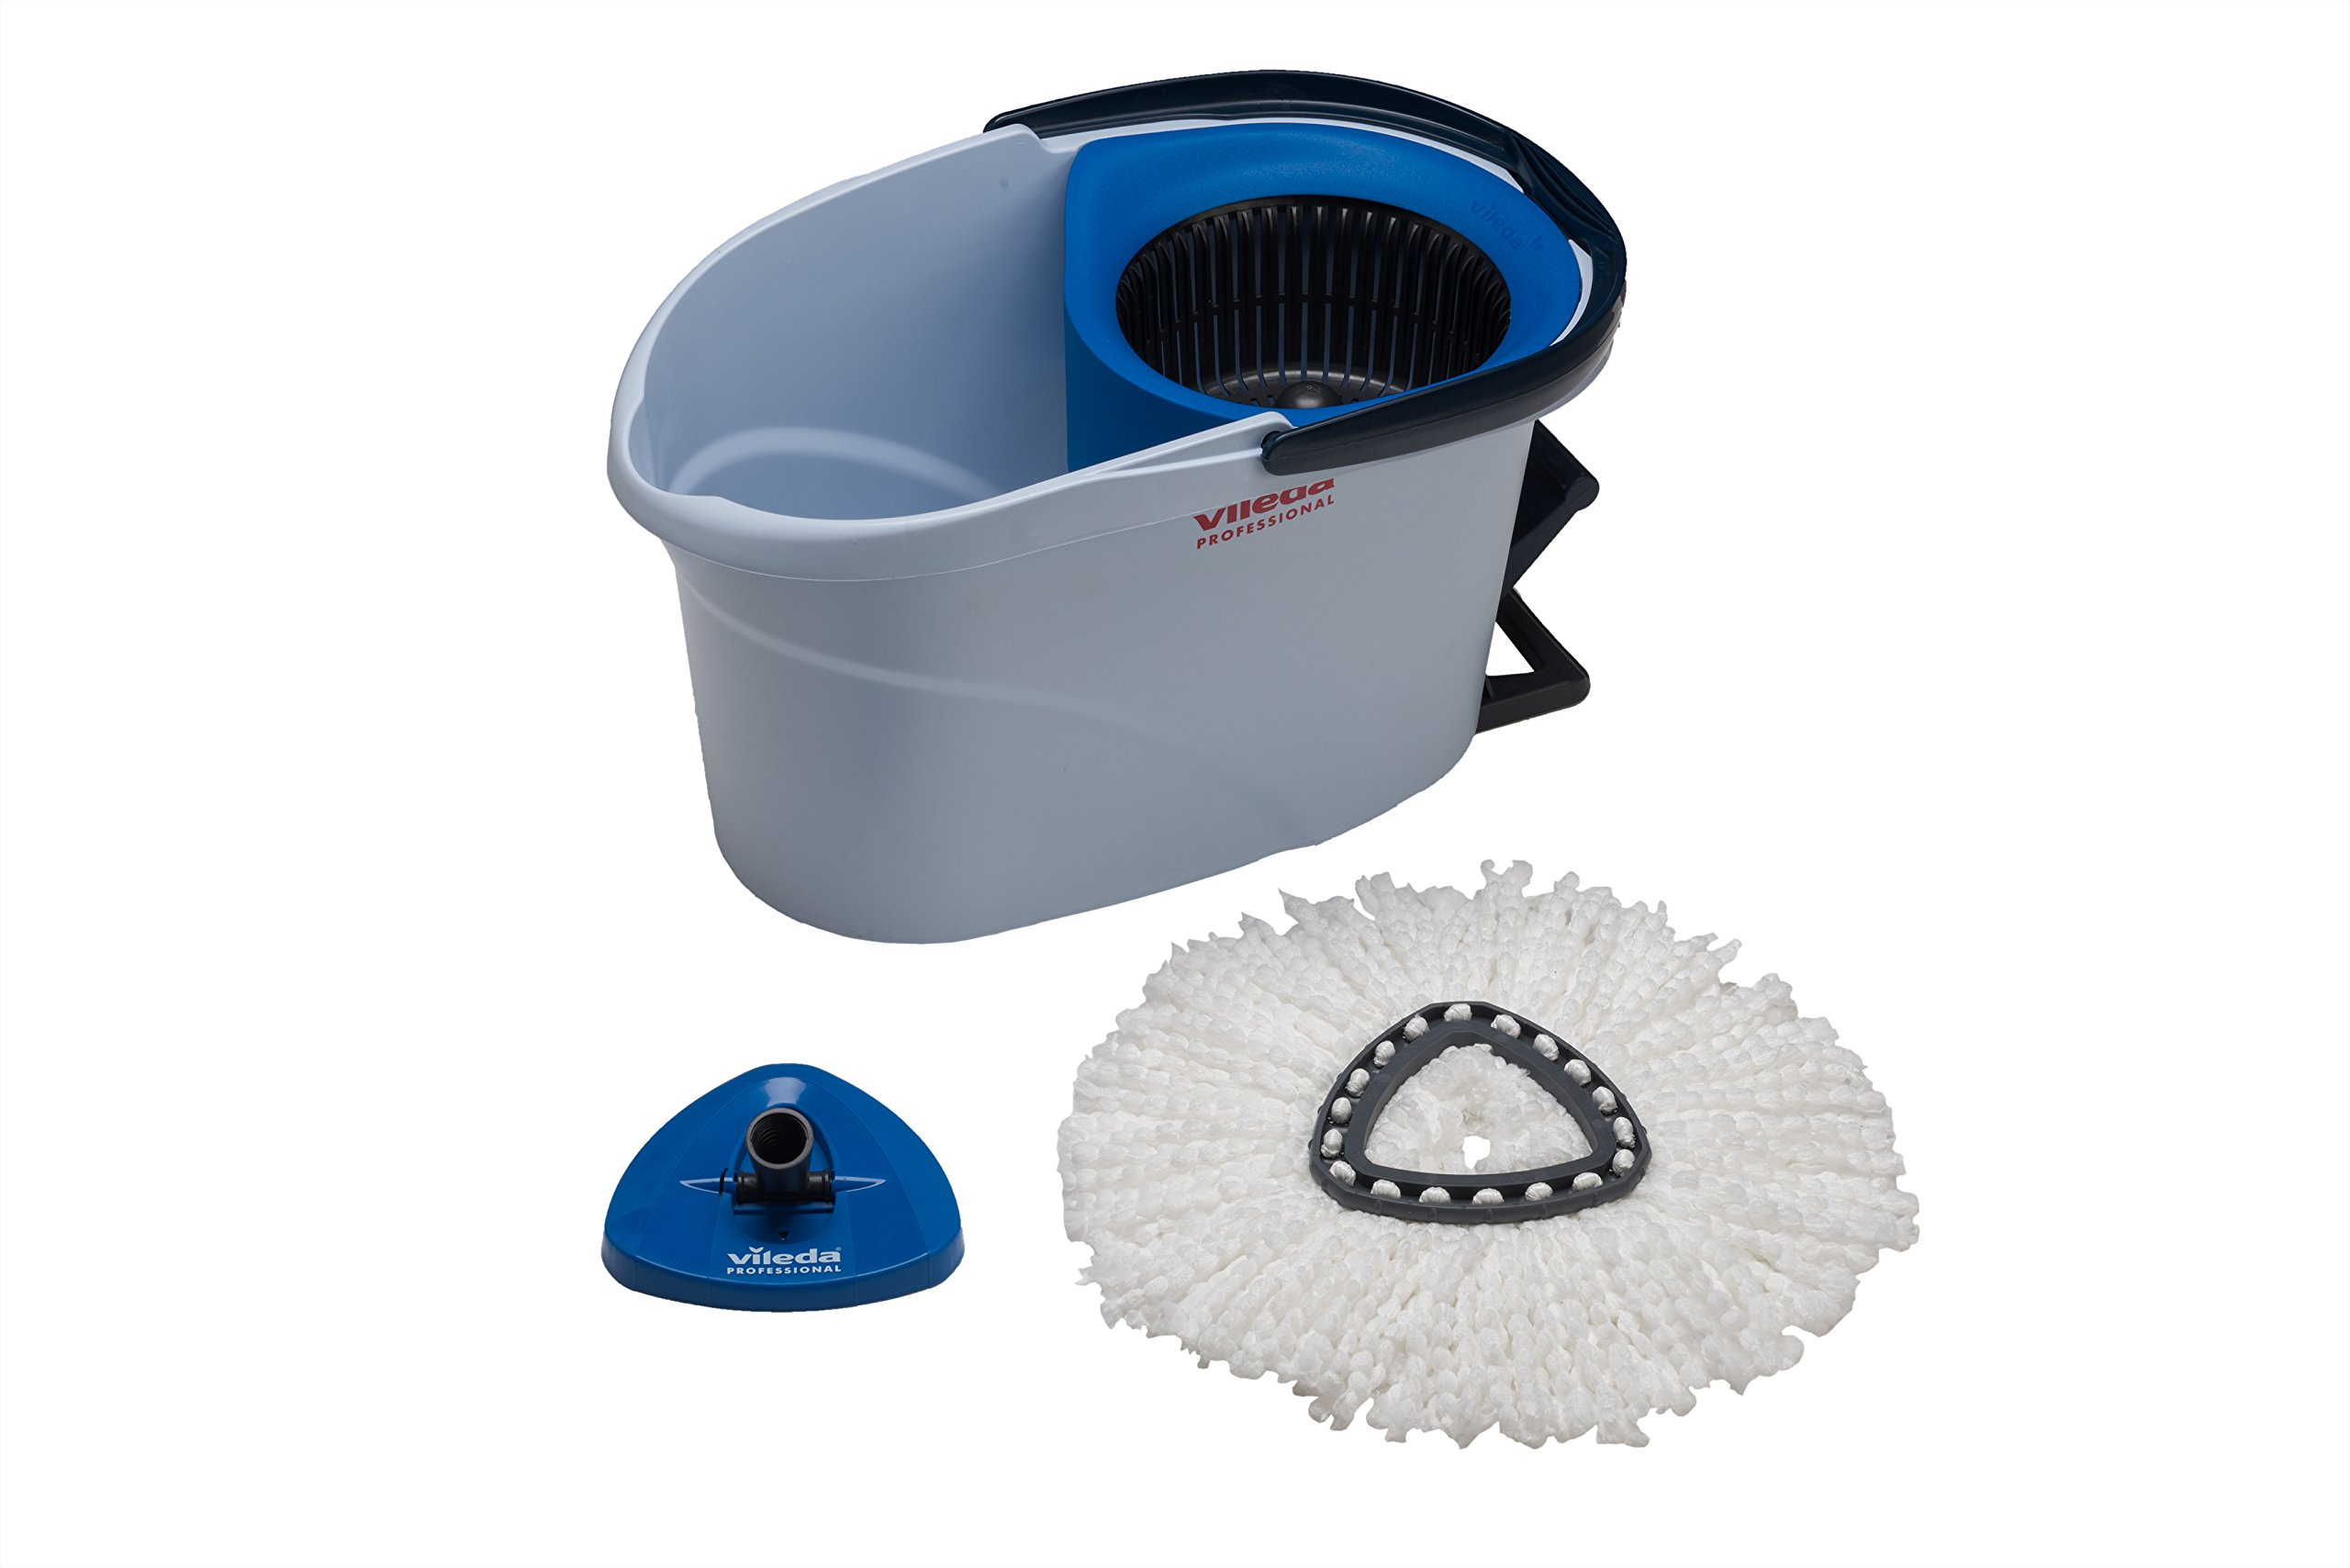 Vileda UltraSpin Mini Kit, Spin Mop with Bucket System for Professional Kitchen Floor Cleaning